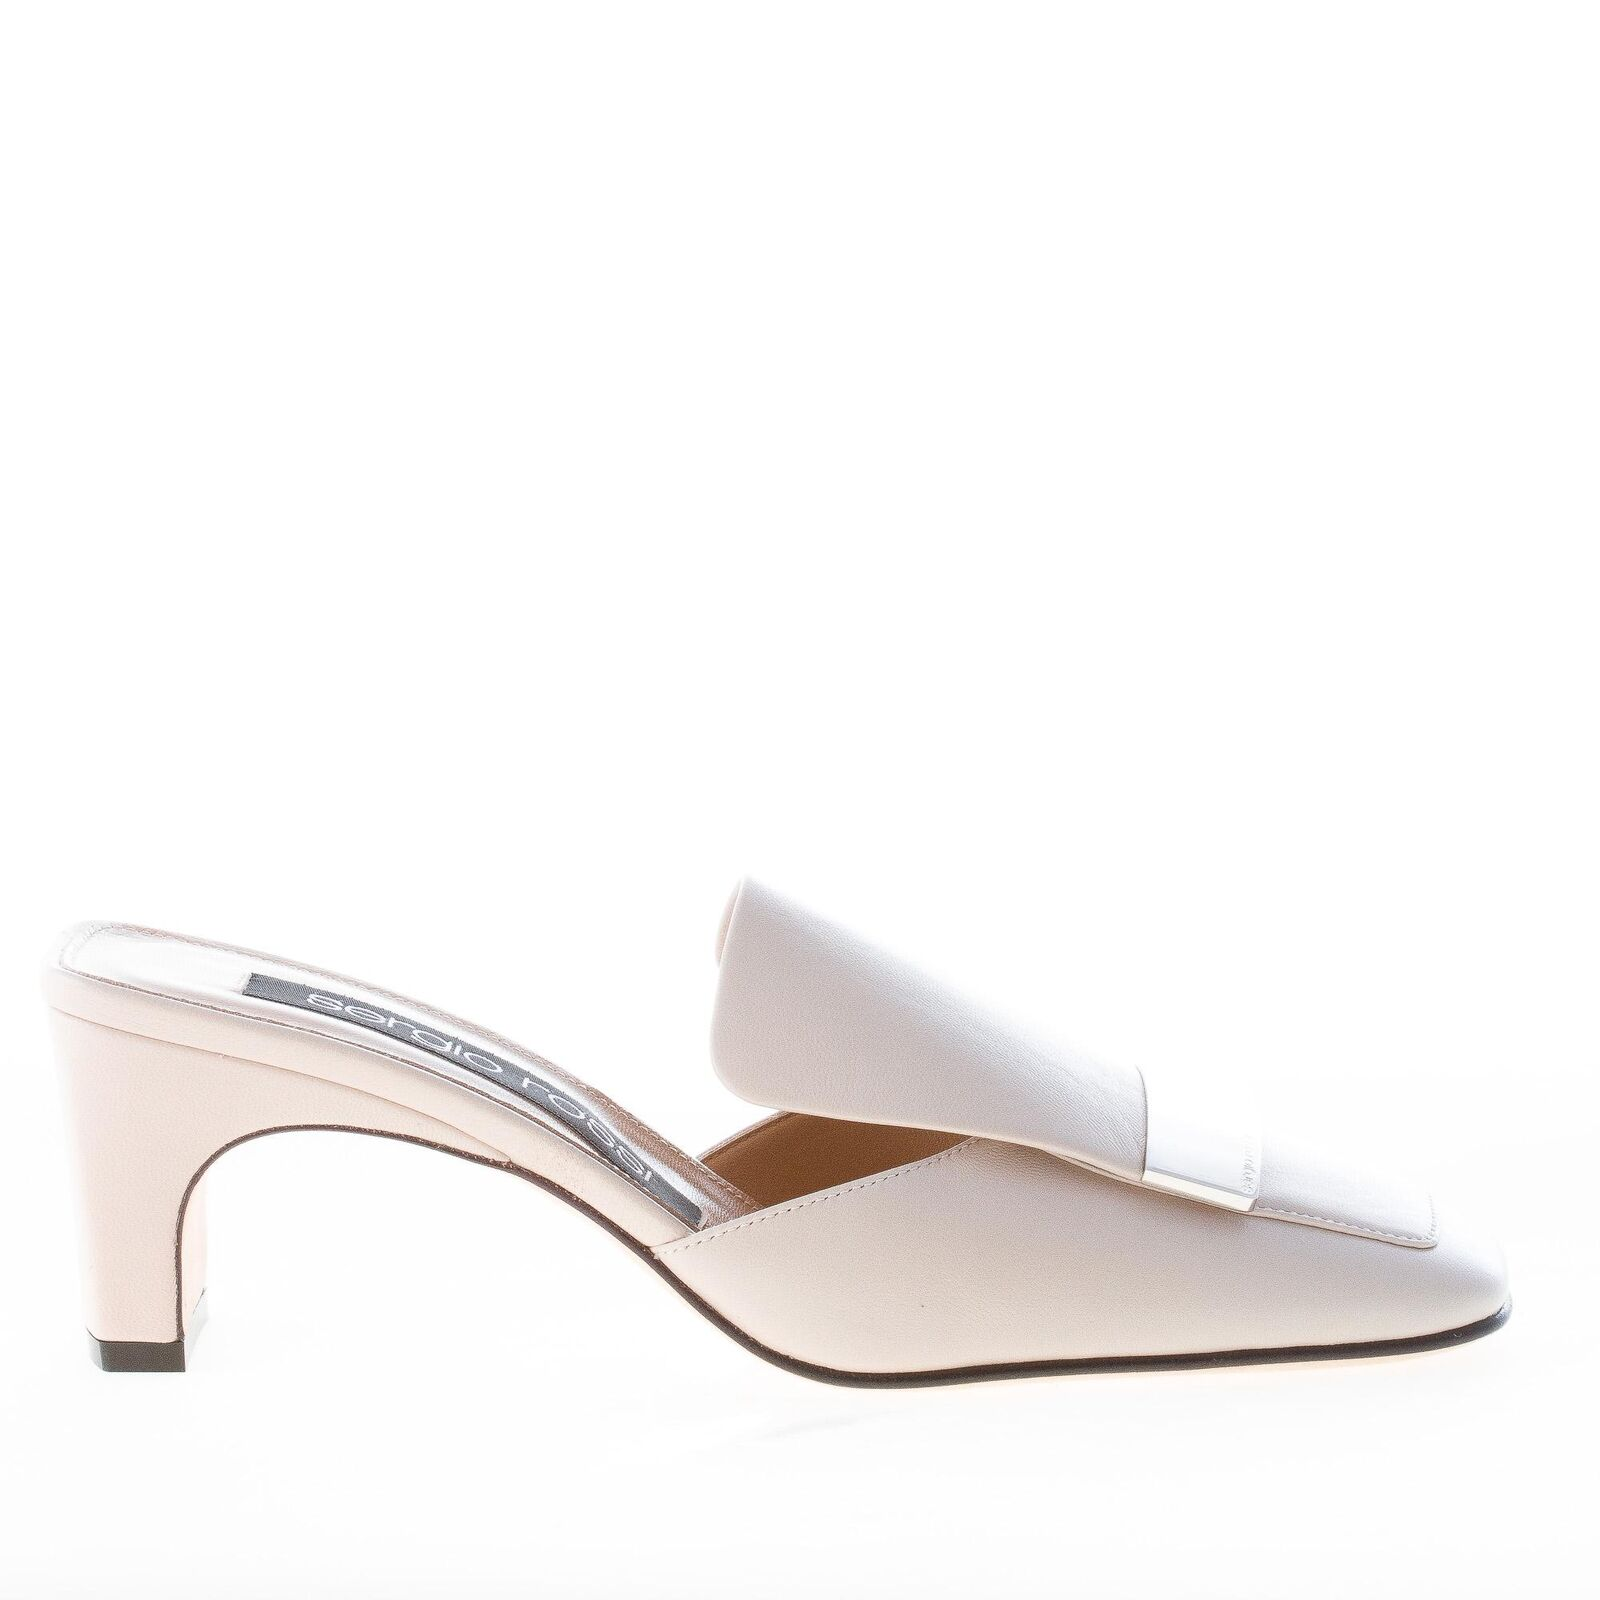 SERGIO ROSSI shoes femme women shoes Ivory leather mule silver-tone plaque